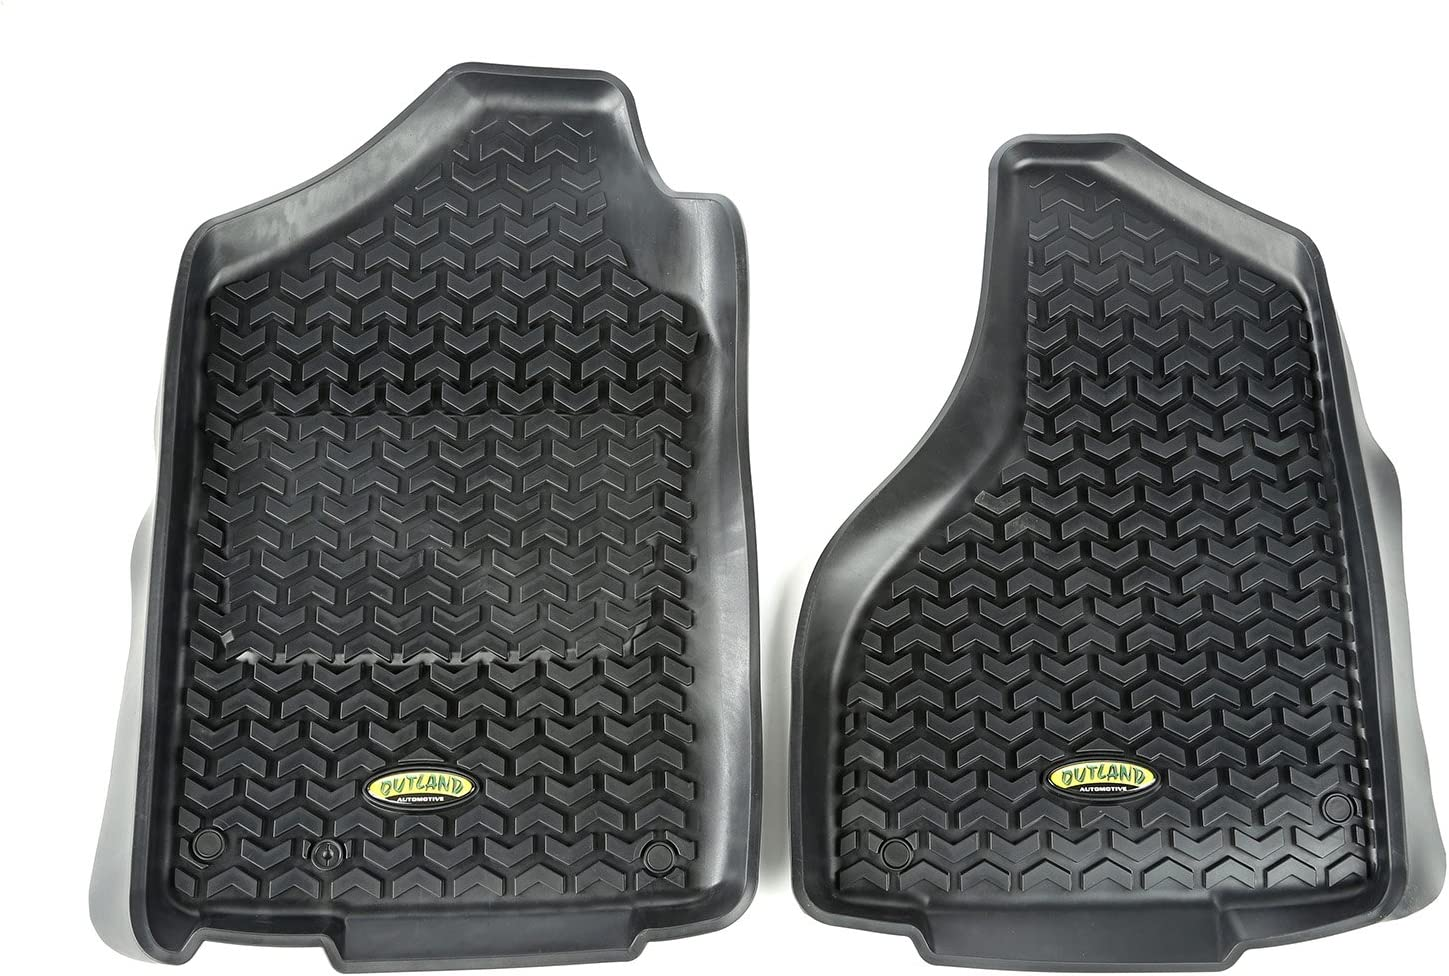 Outland 398290305 Black Front Row Floor Liner For Select Dodge Ram, Ram 1500, 2500 and 3500 Models 81TUHji4d4LSL1500_